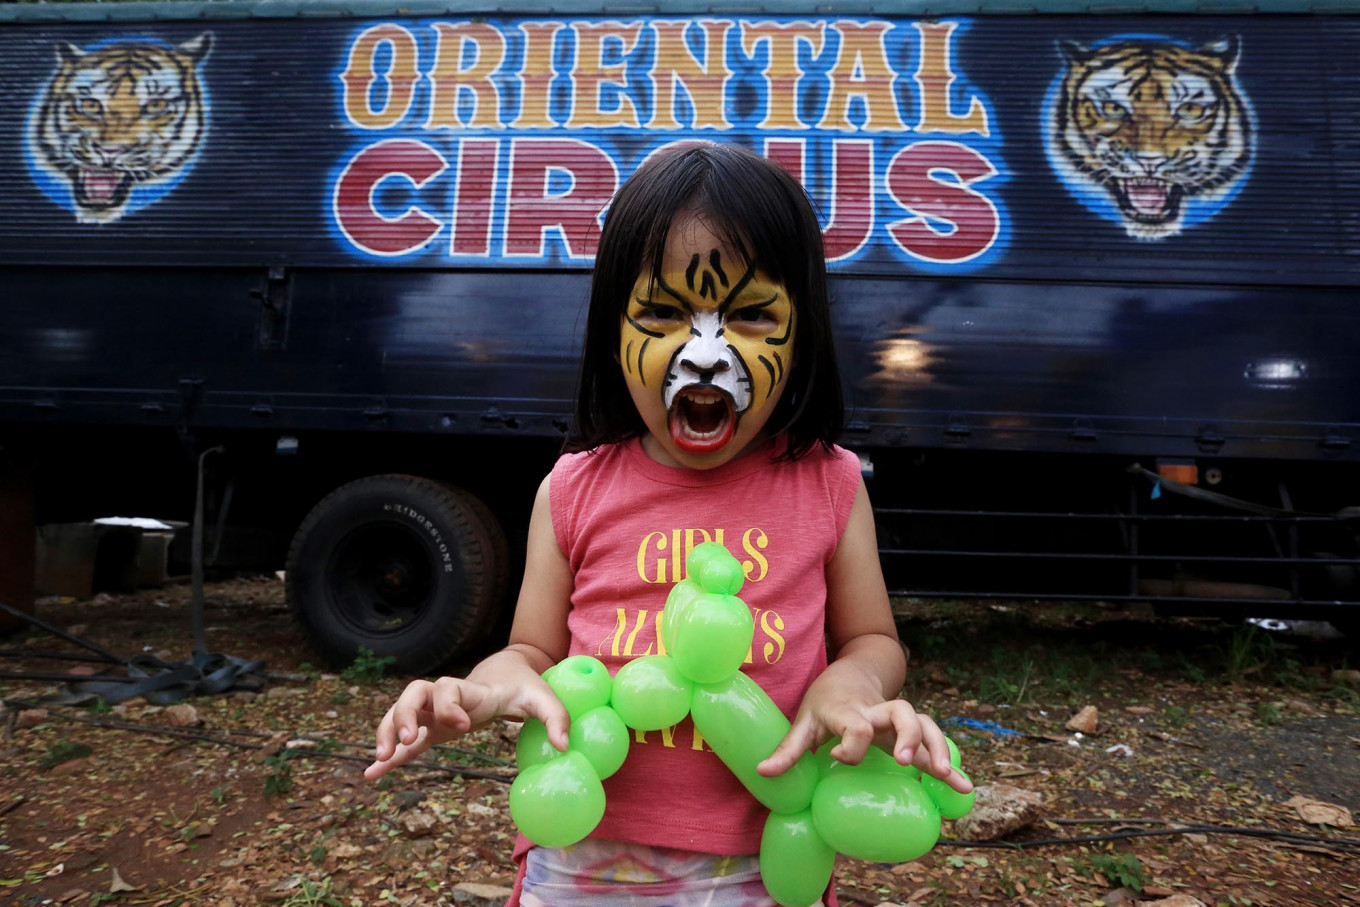 Hear me roar: A girl, Lembayung Langit Senja, growls like a tiger as she waits for the opening of The Great 50 Show by the Oriental Circus Indonesia. JP/Dhoni Setiawan